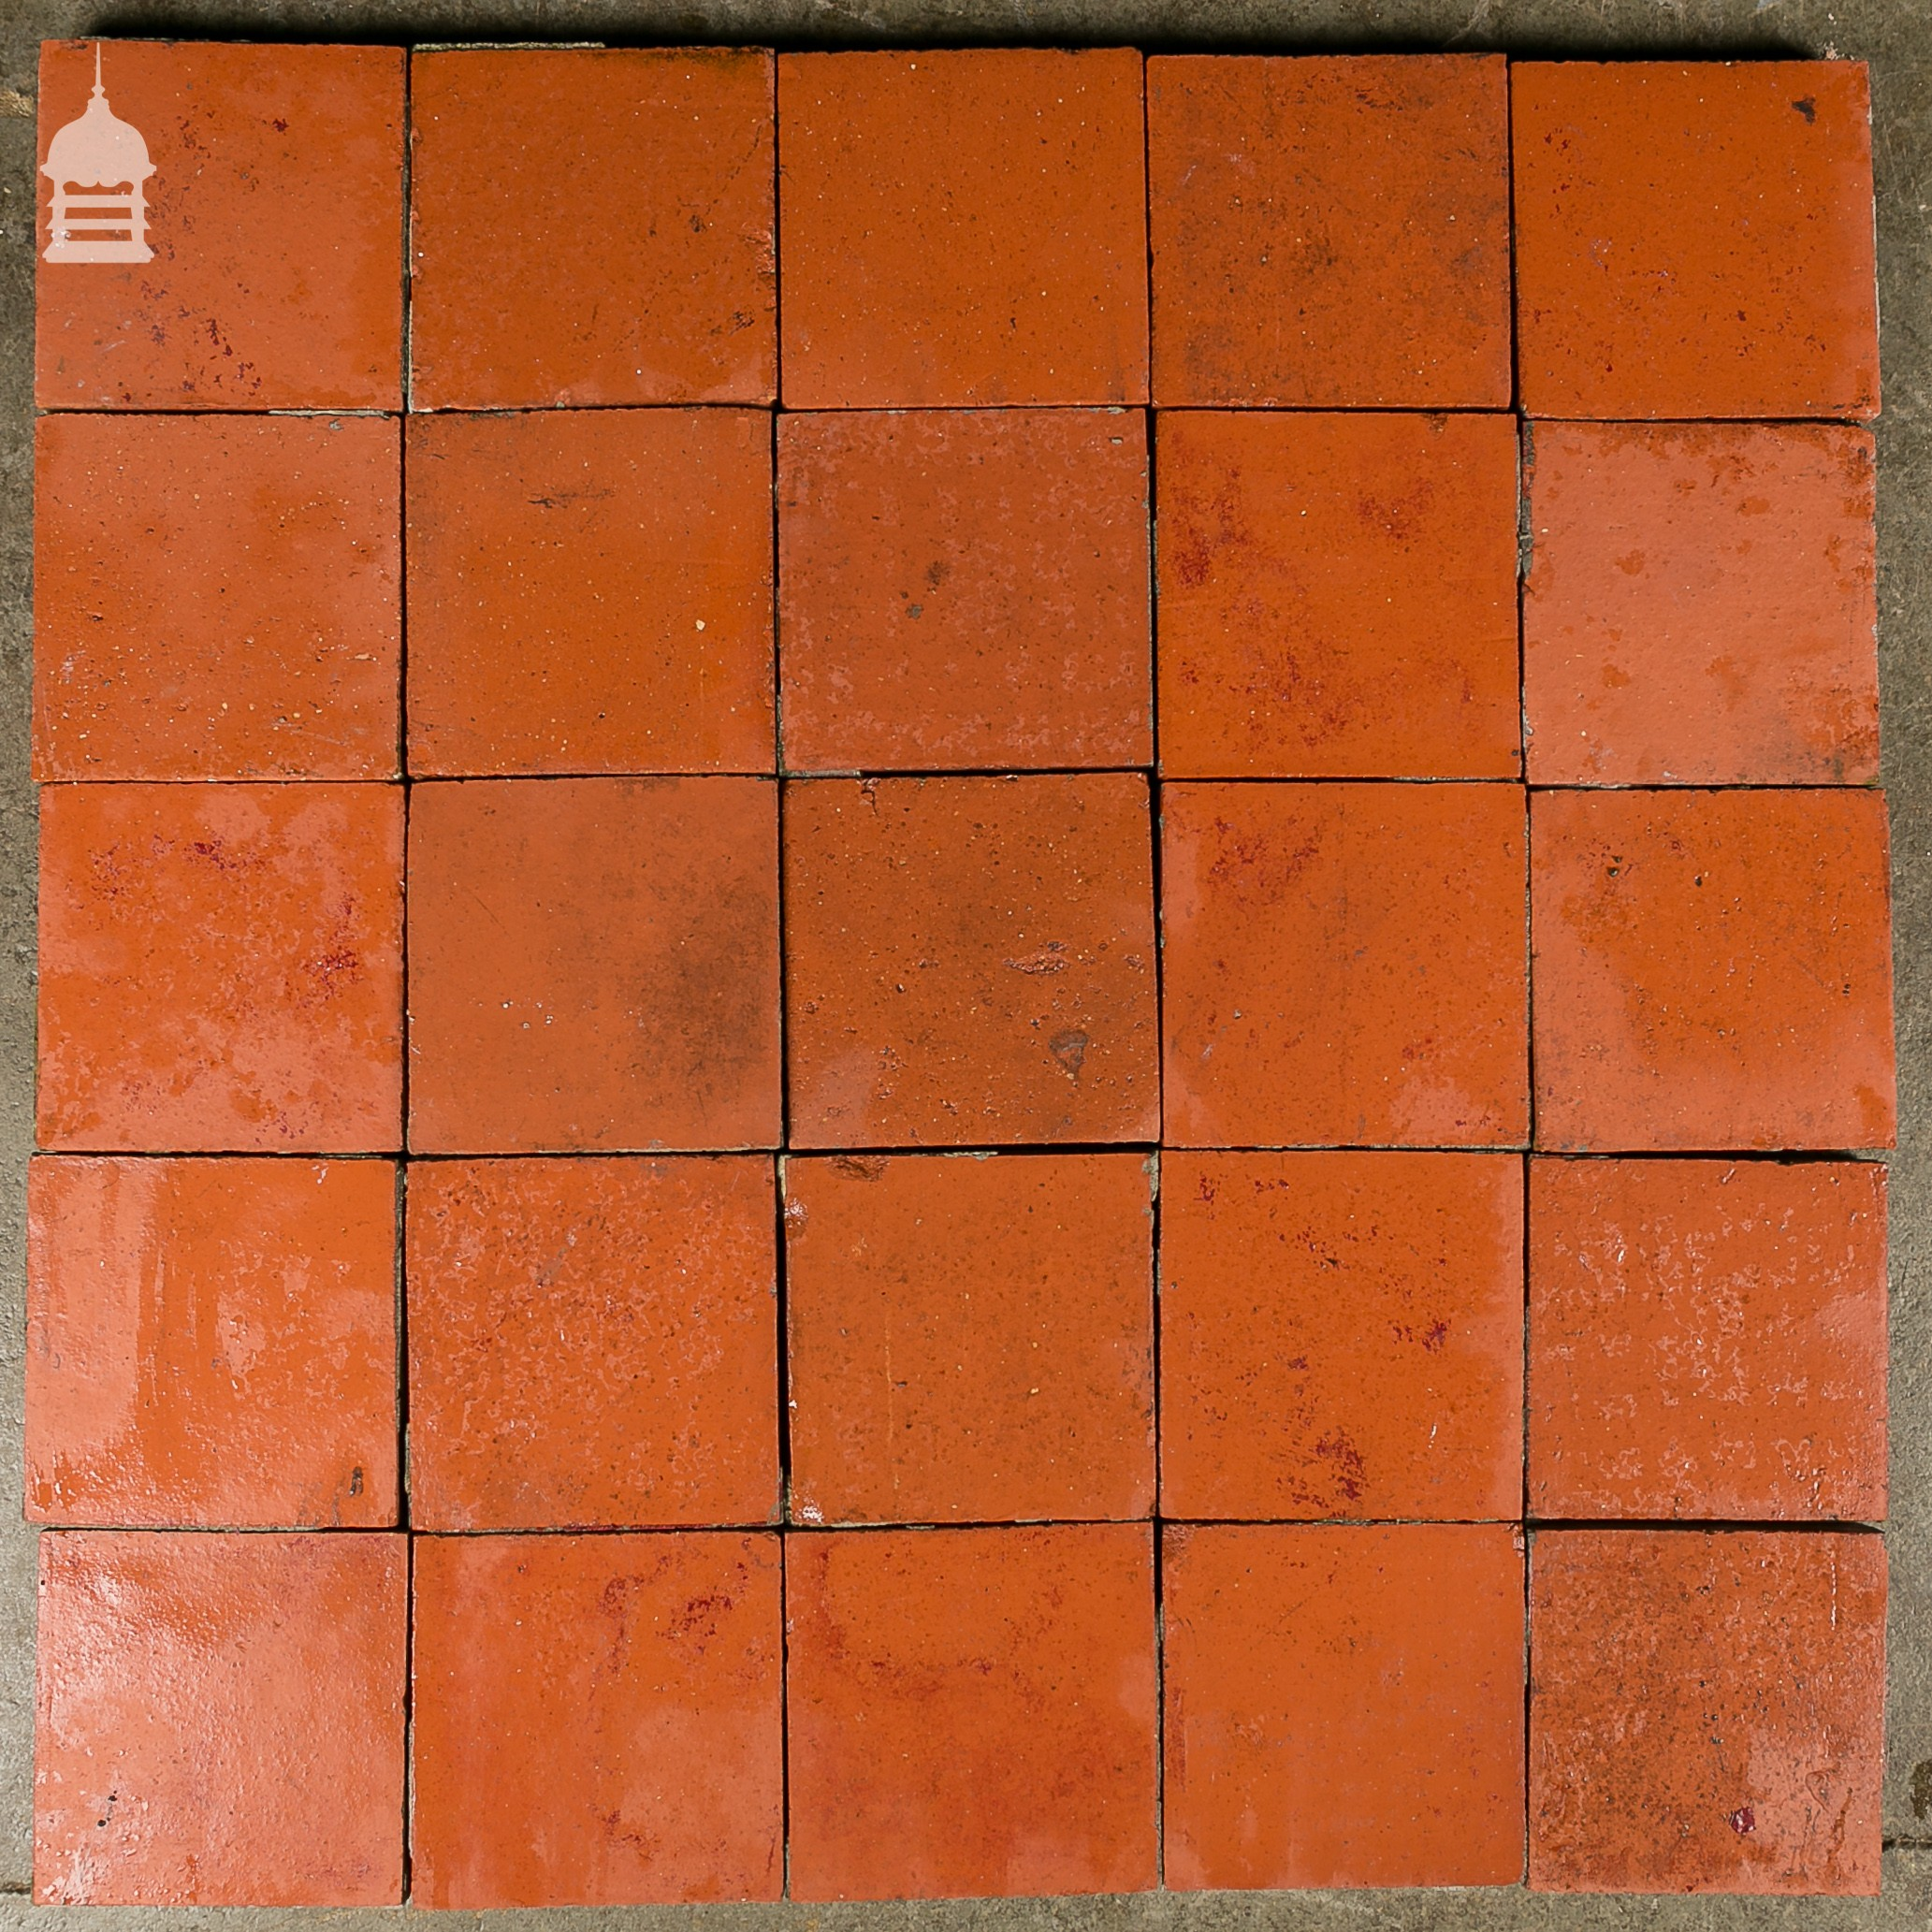 reclaimed 6x6 thick red quarry tiles 6 inch x 6 inch floor tiles. Black Bedroom Furniture Sets. Home Design Ideas